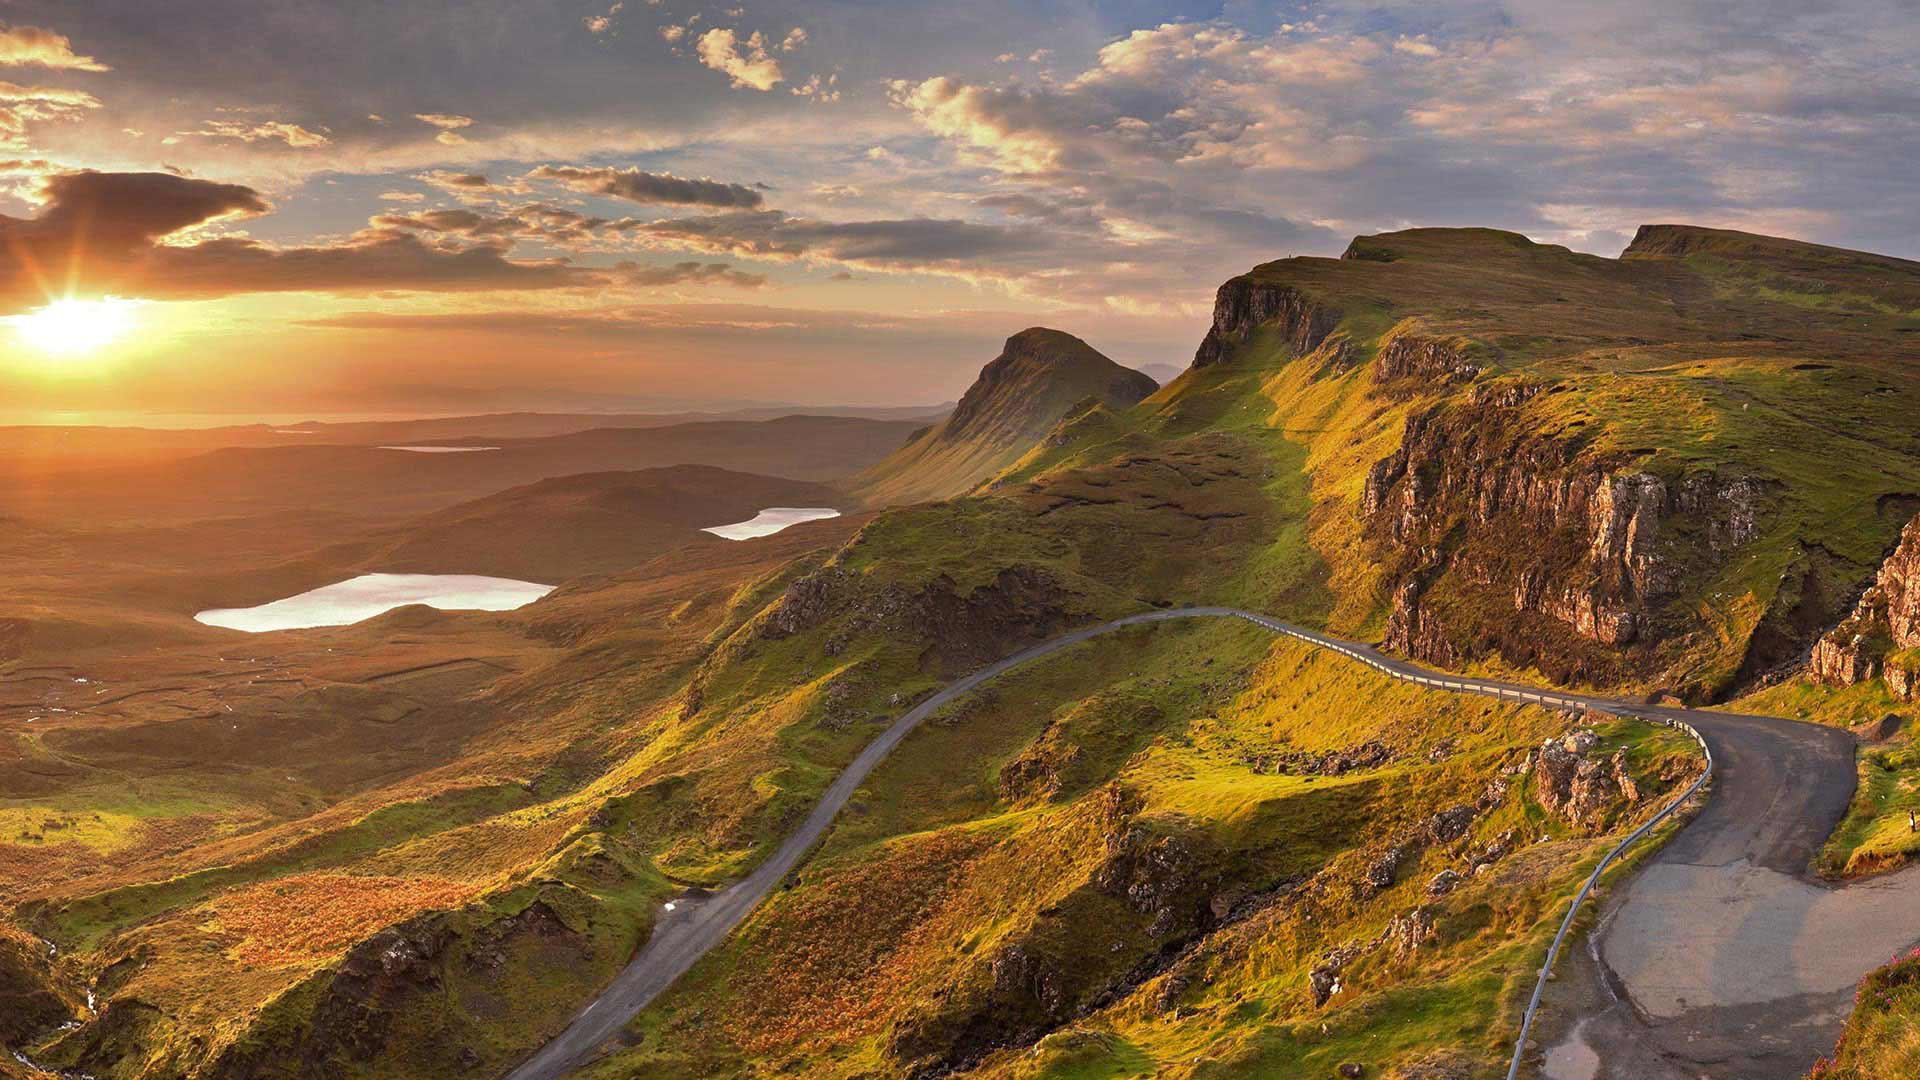 sun rising over quiraing rock formation